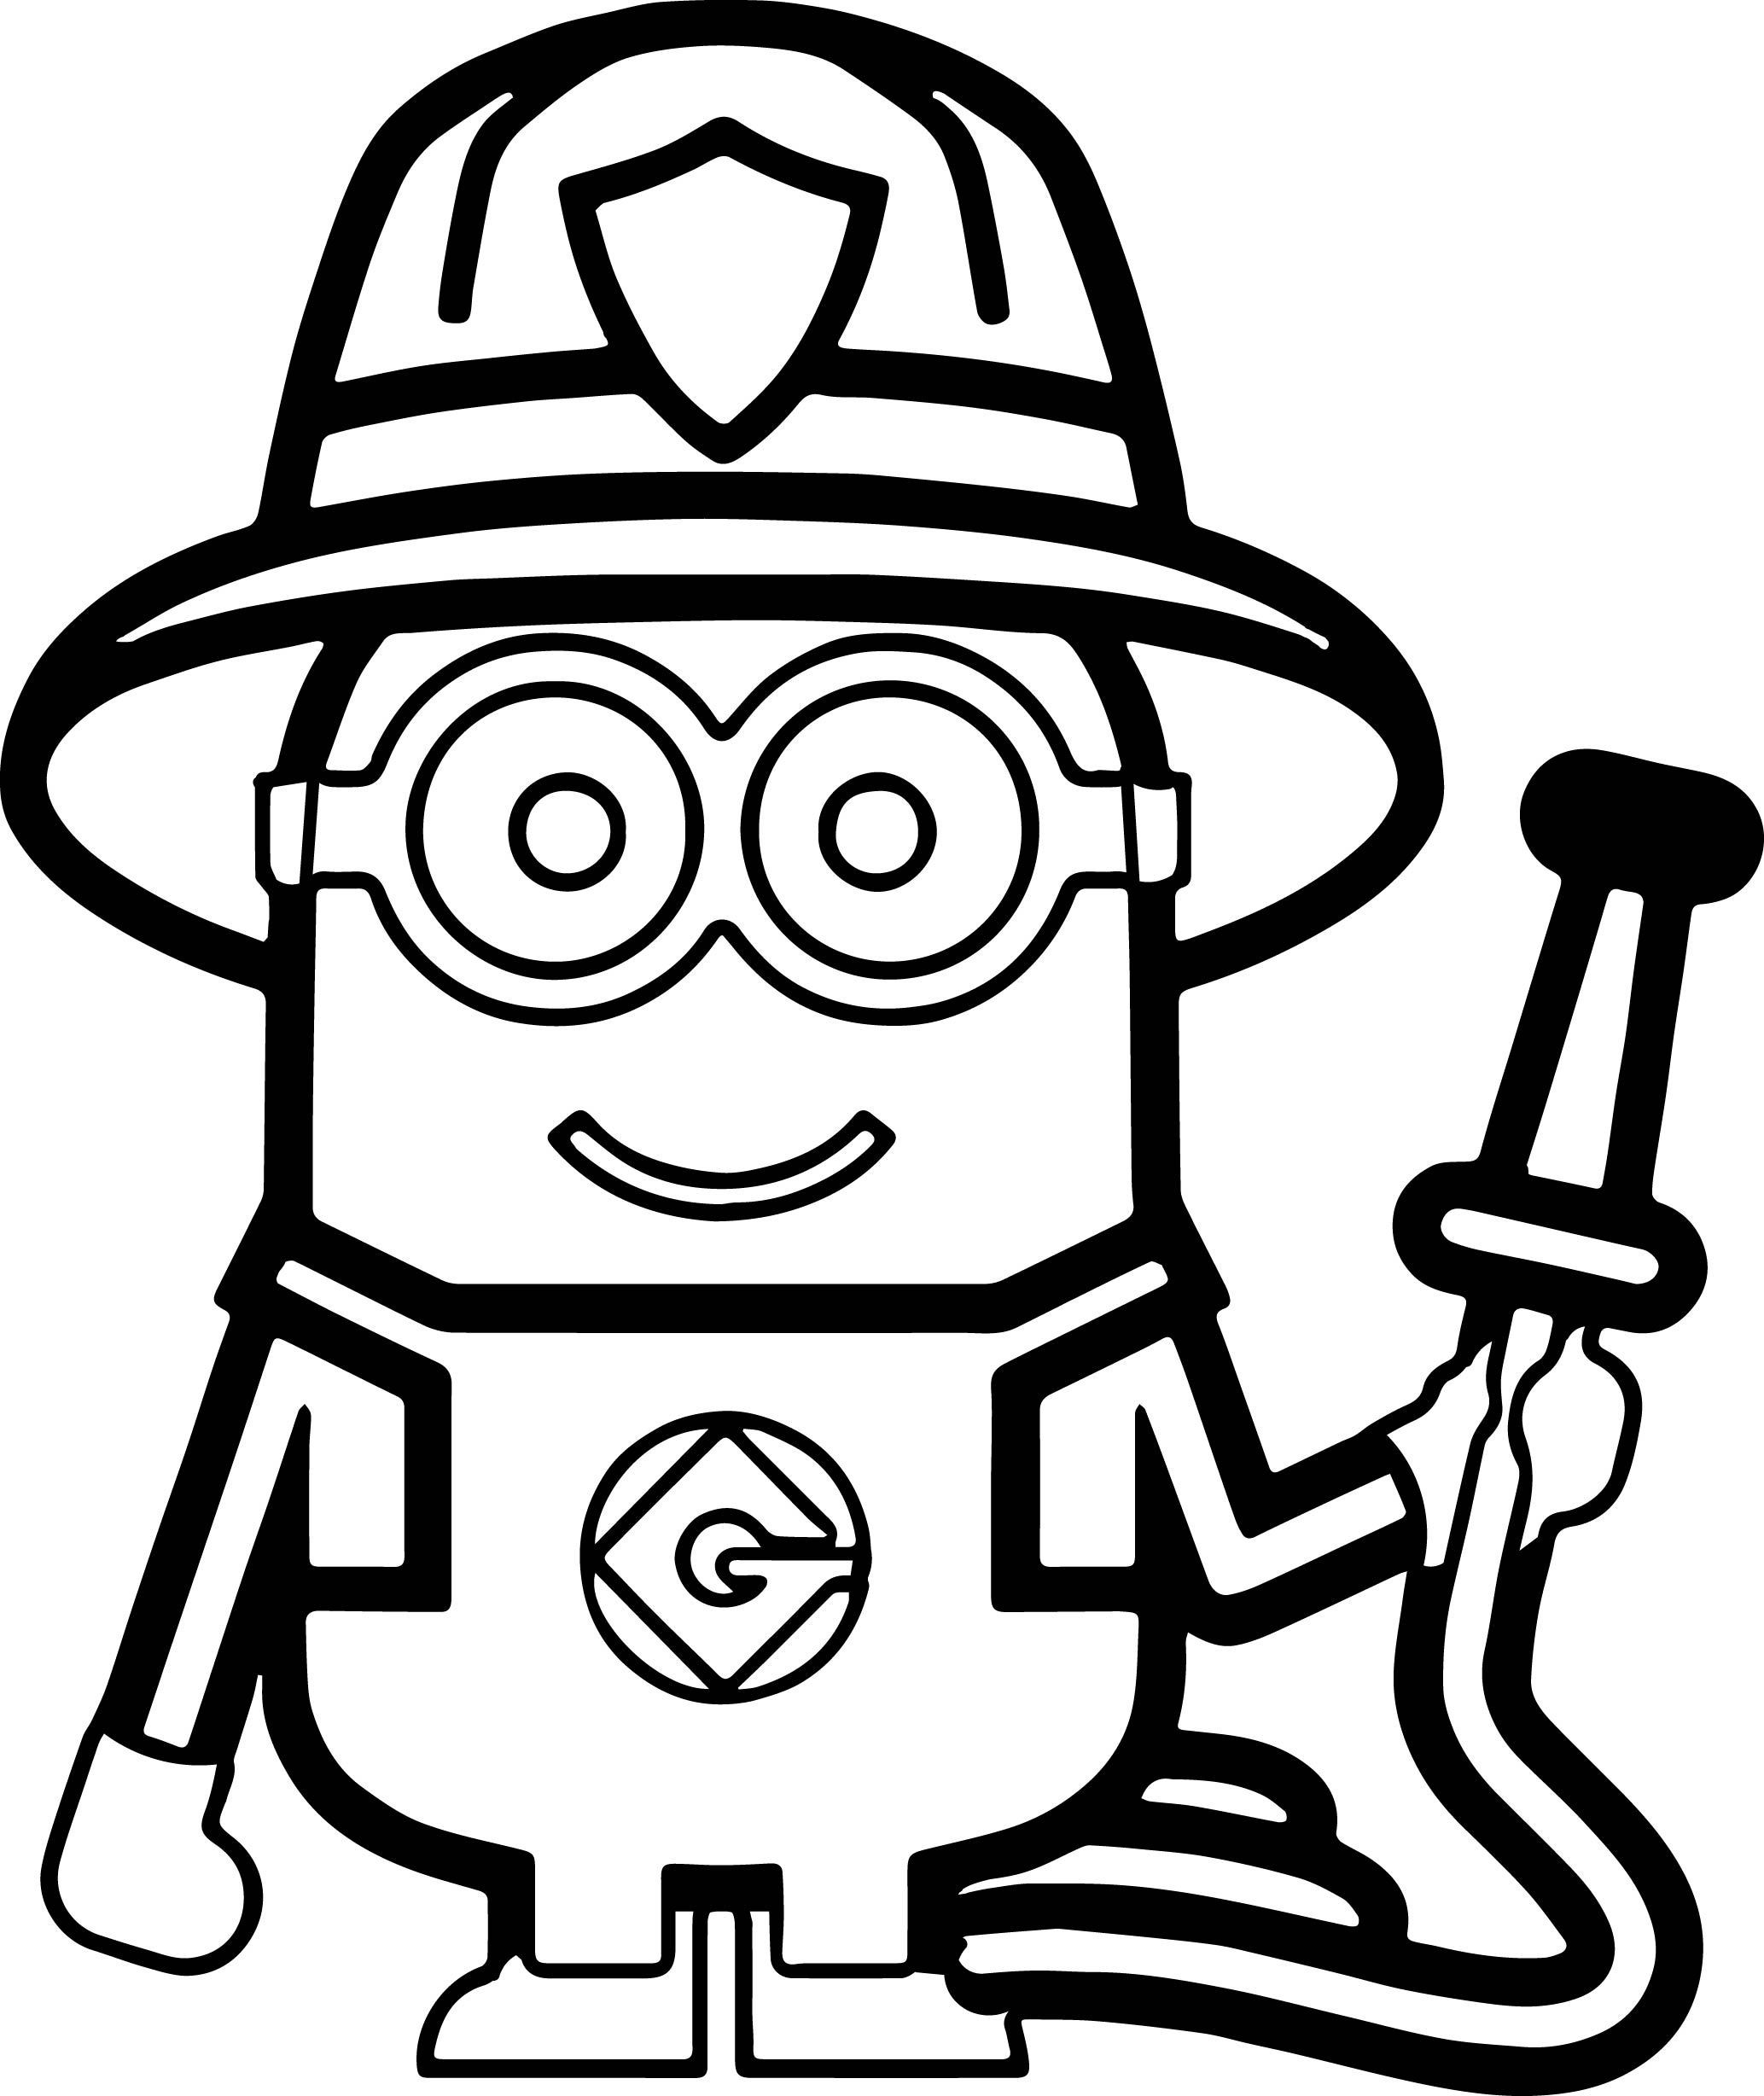 2067x2456 Focus Fire Fighter Coloring Pages Firefighter Freecolorngpages Co